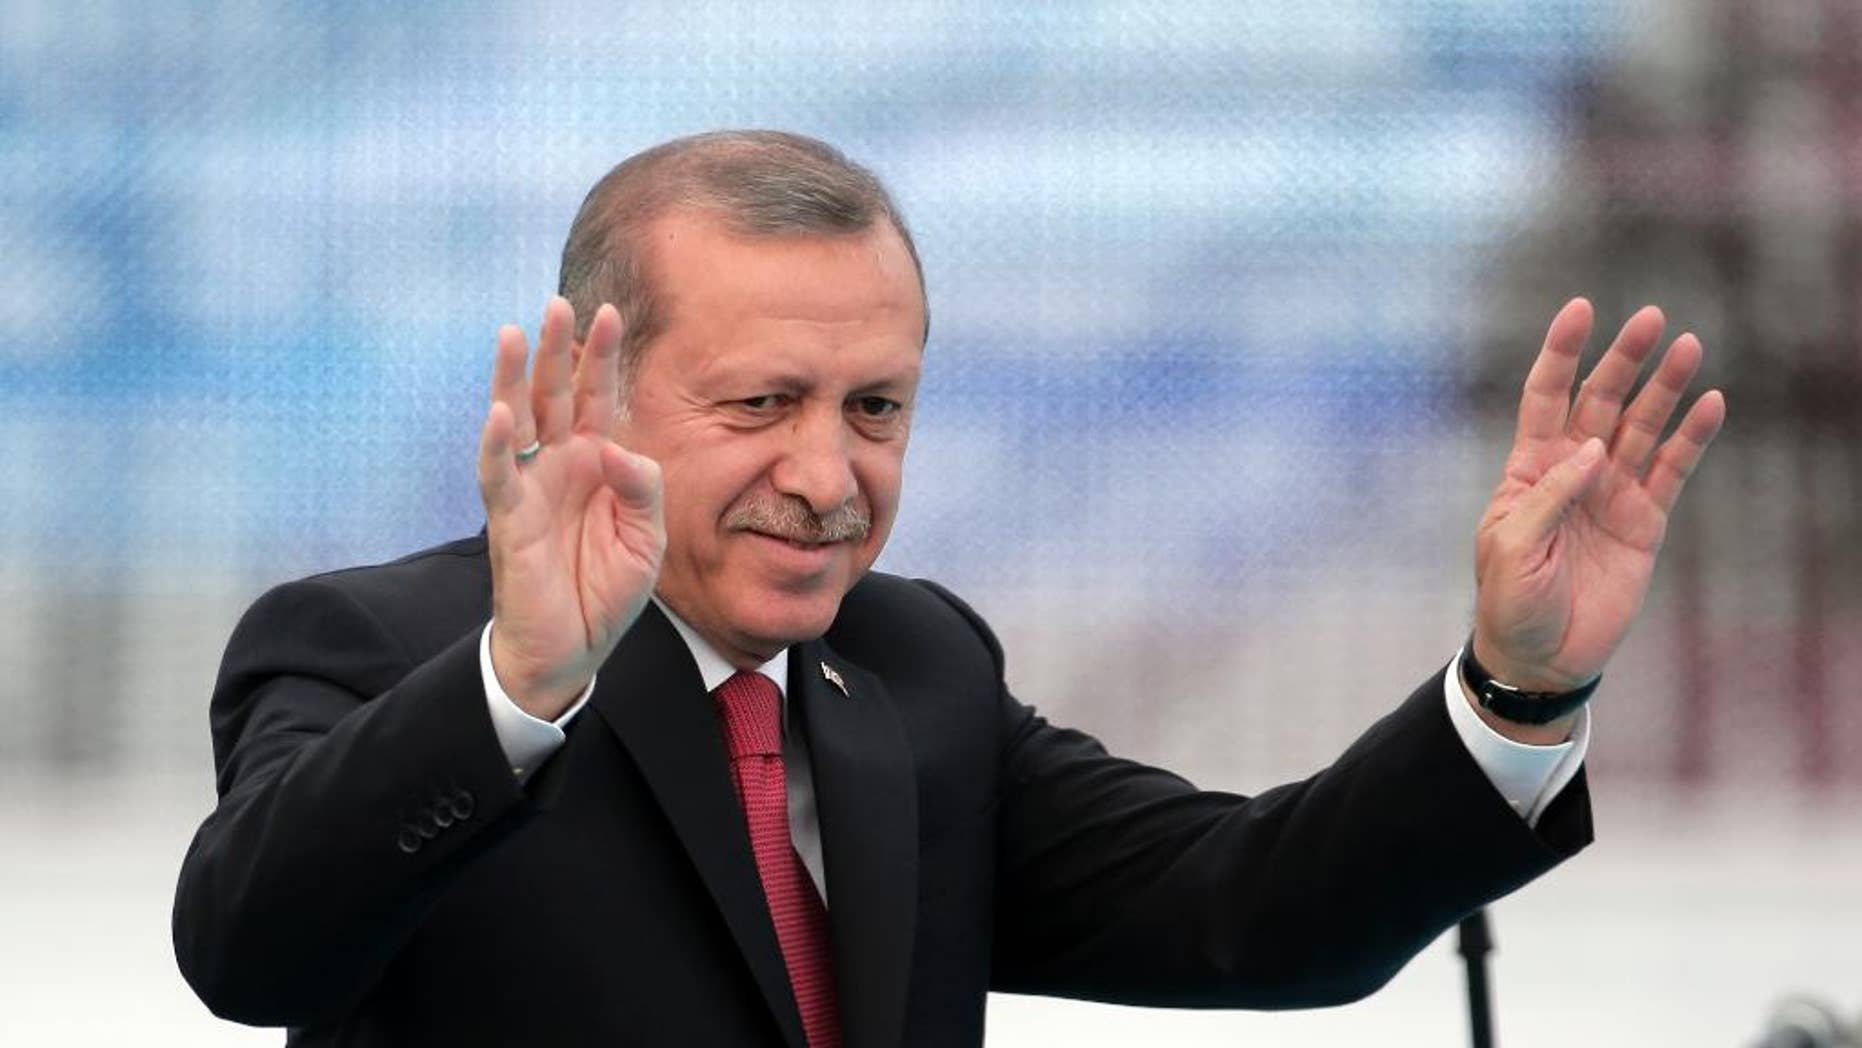 Turkey's President Recep Tayyip Erdogan waves to people gathered during a rally to commemorate the anniversary of the city's conquest by the Ottoman Turks, Istanbul, Turkey, Saturday, May 30, 2015. The Justice and Development Party (AKP), which has been ruling Turkey since 2002, is running in the upcoming general elections which are to be held on June 7, 2015, where approximately 56 million Turkish voters are eligible to cast their ballots to elect the 550 members of the Grand National Assembly. (AP Photo/Lefteris Pitarakis)